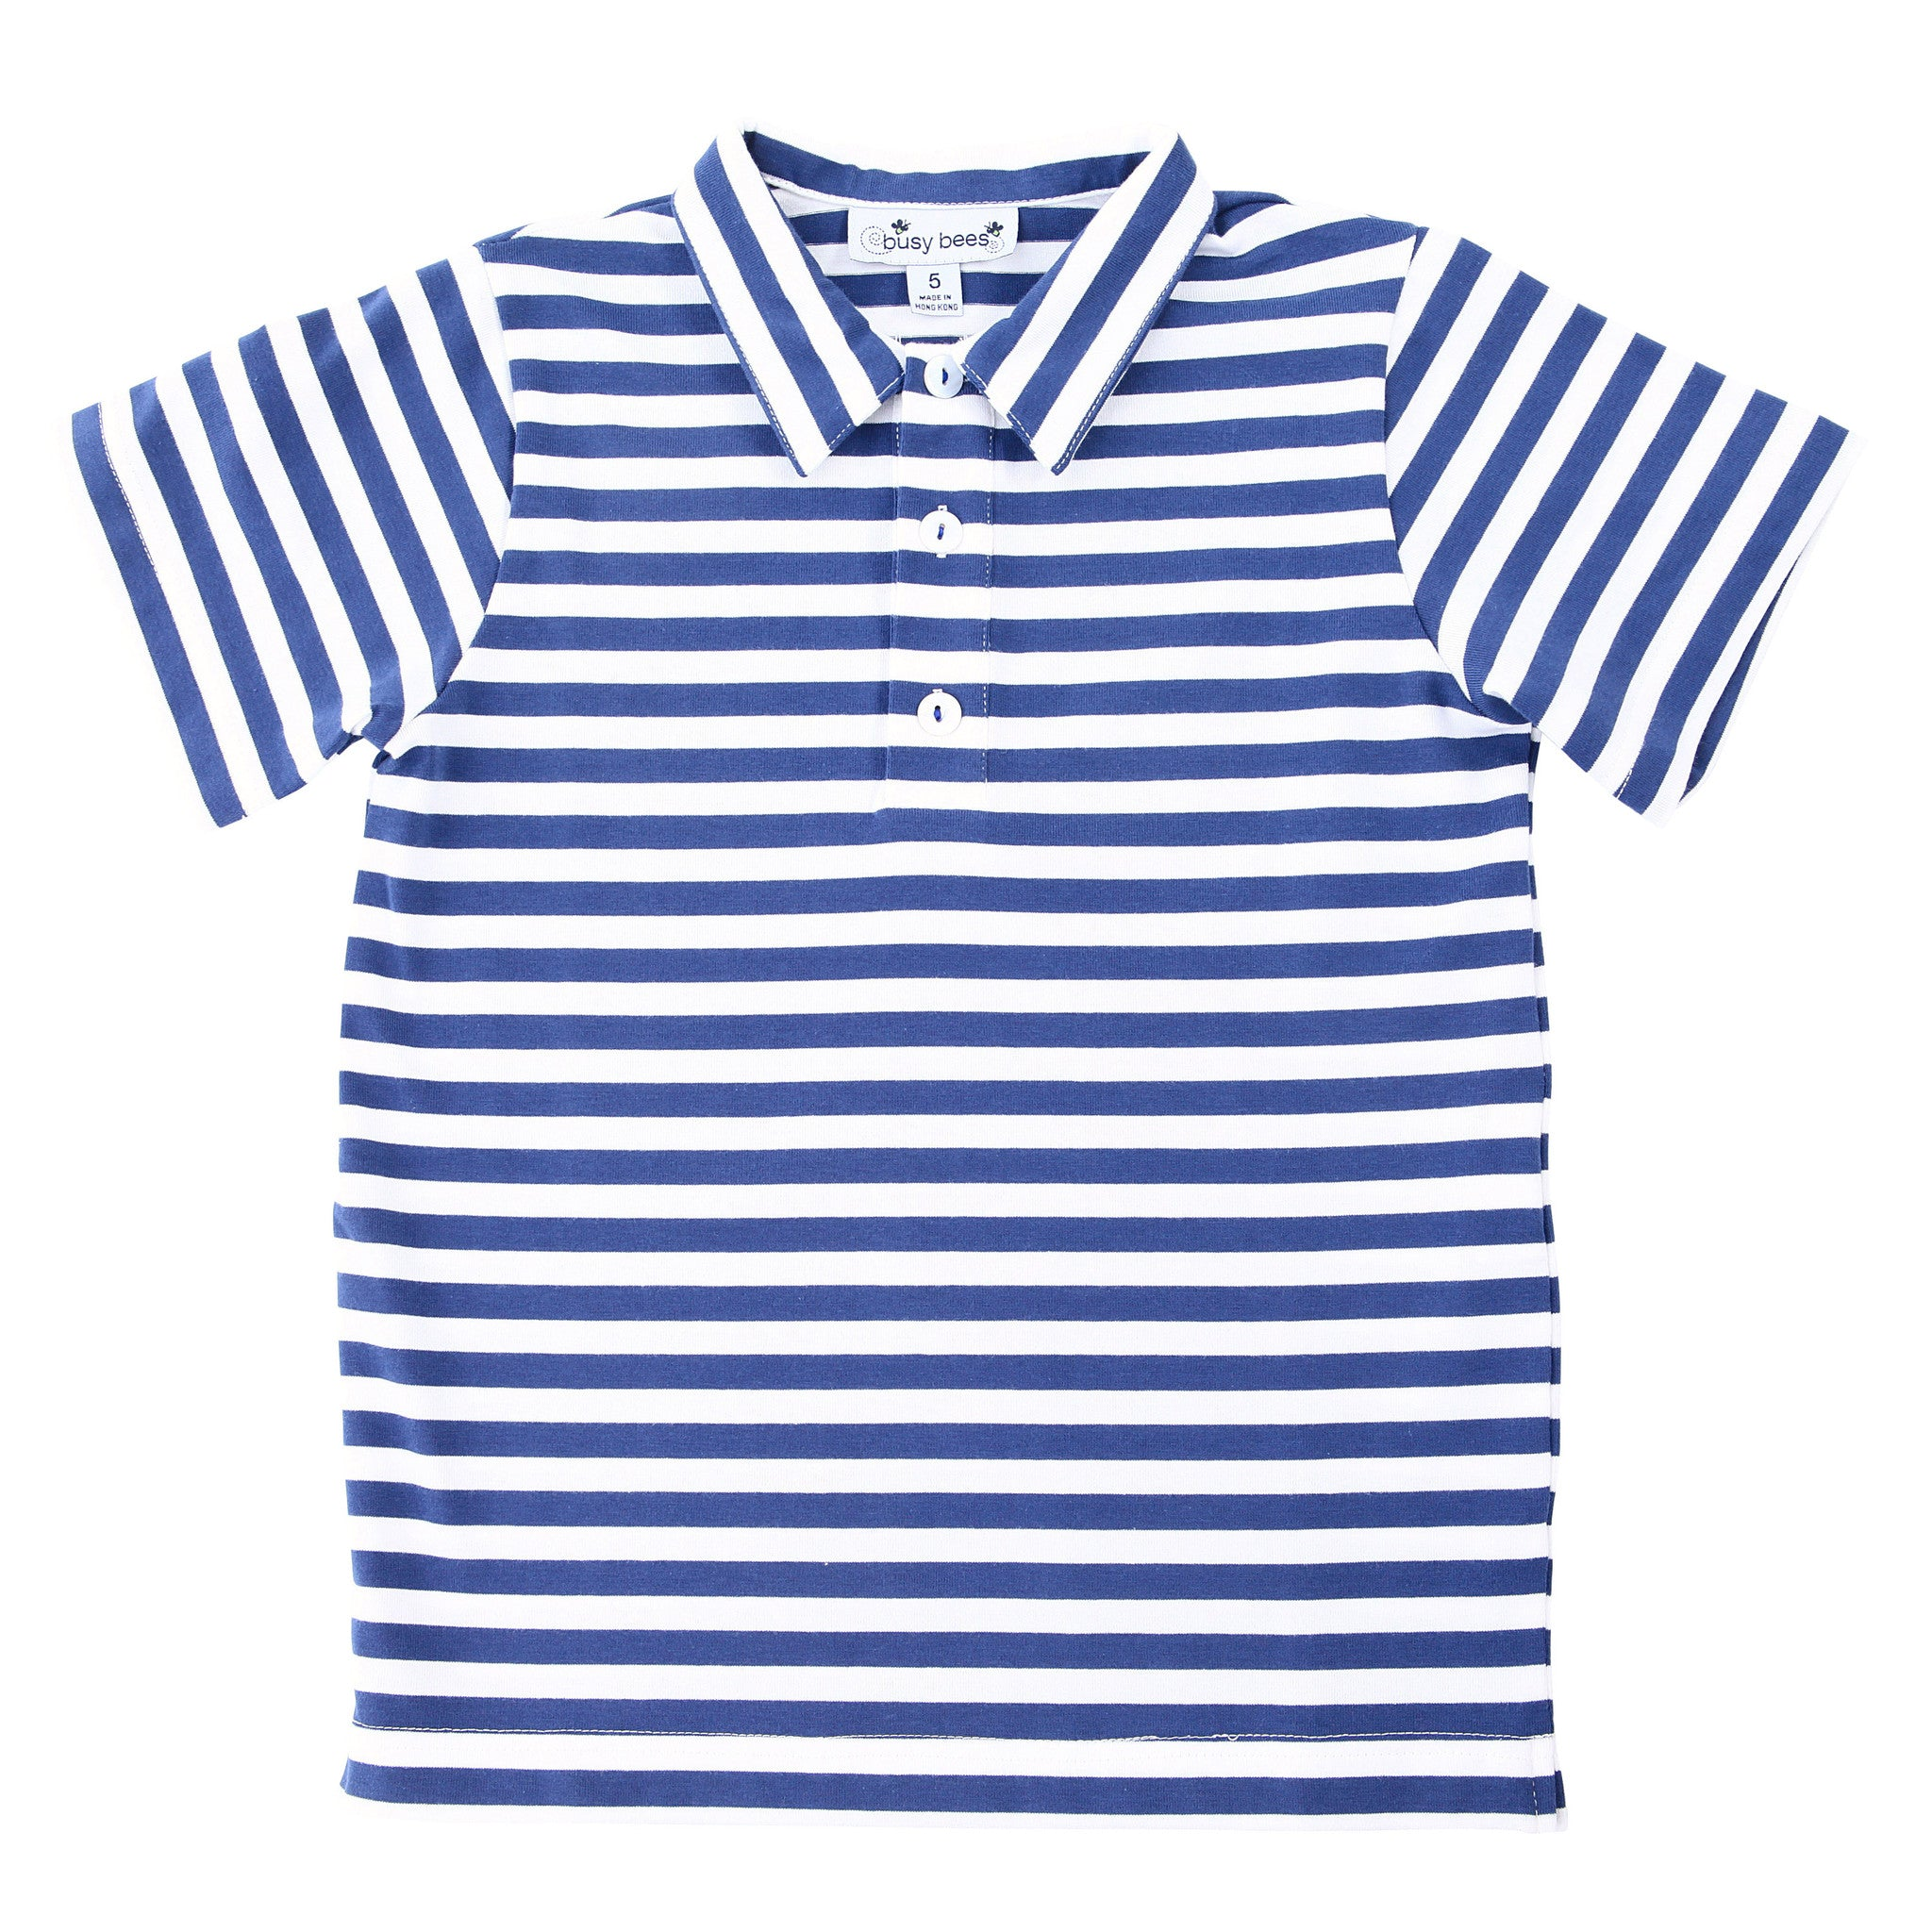 busy bees polo varsity stripe knit